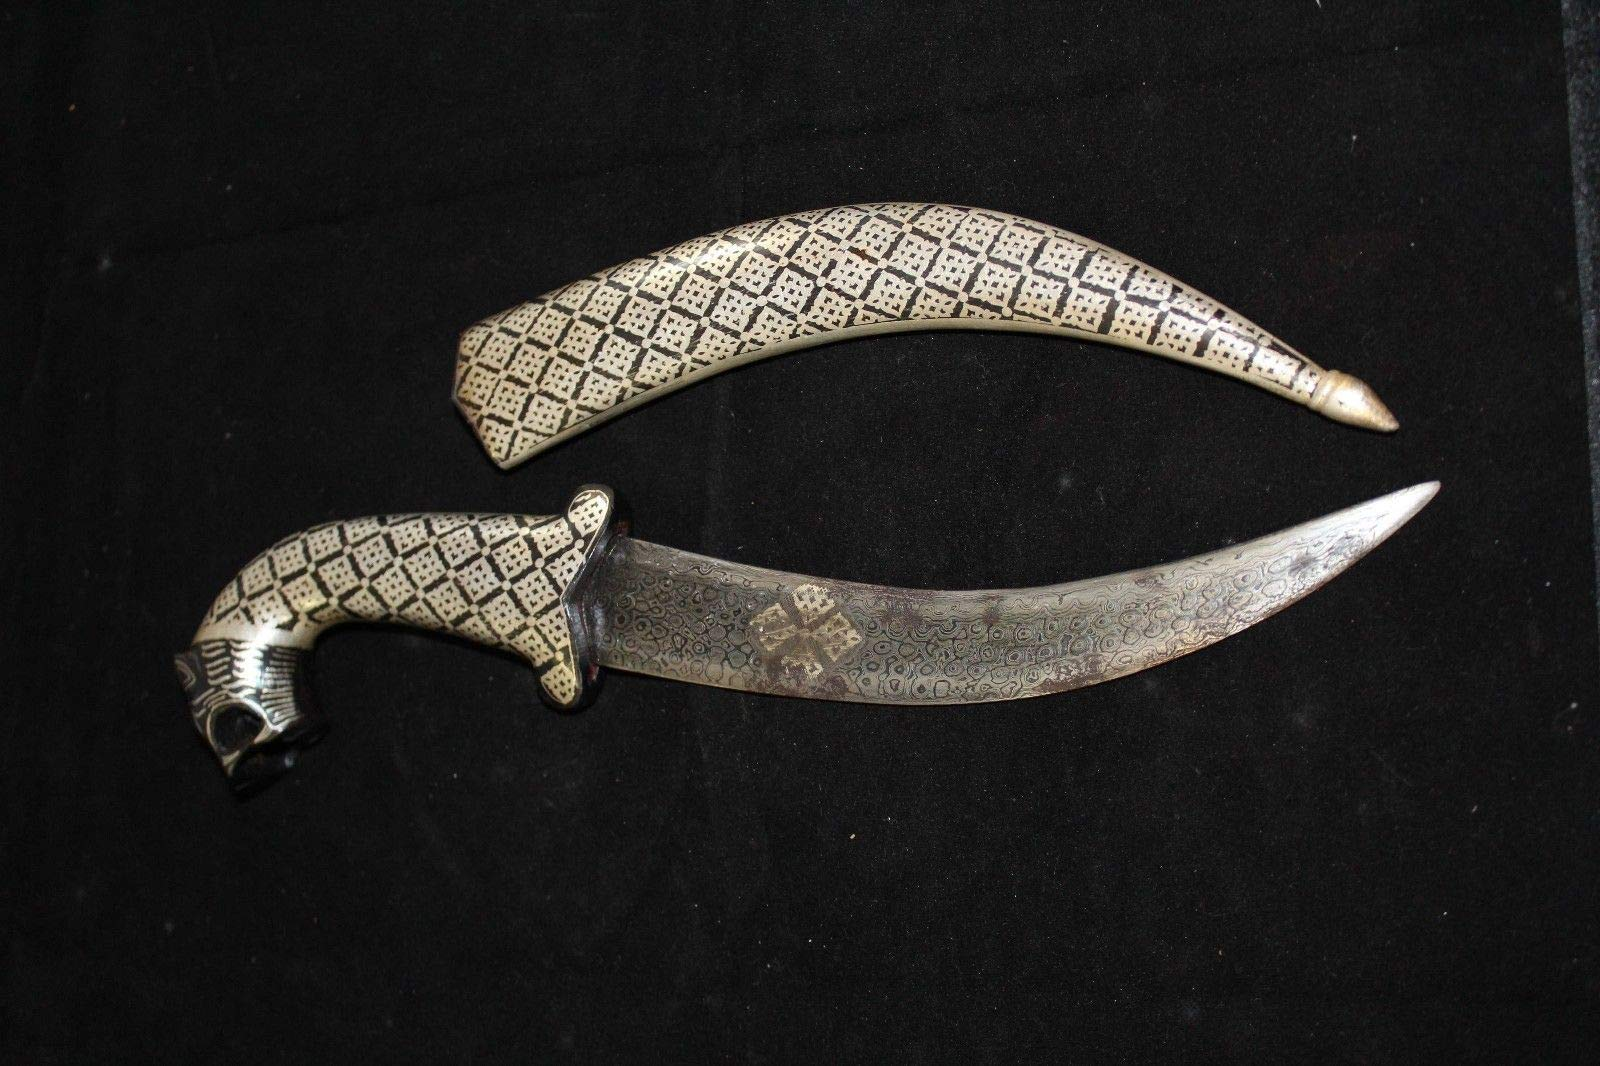 Rajasthan Gems Dagger Knife, Damascus Steel Blade, Silver Wire Bidaree Work Tiger face Handle by Rajasthan Gems (Image #5)